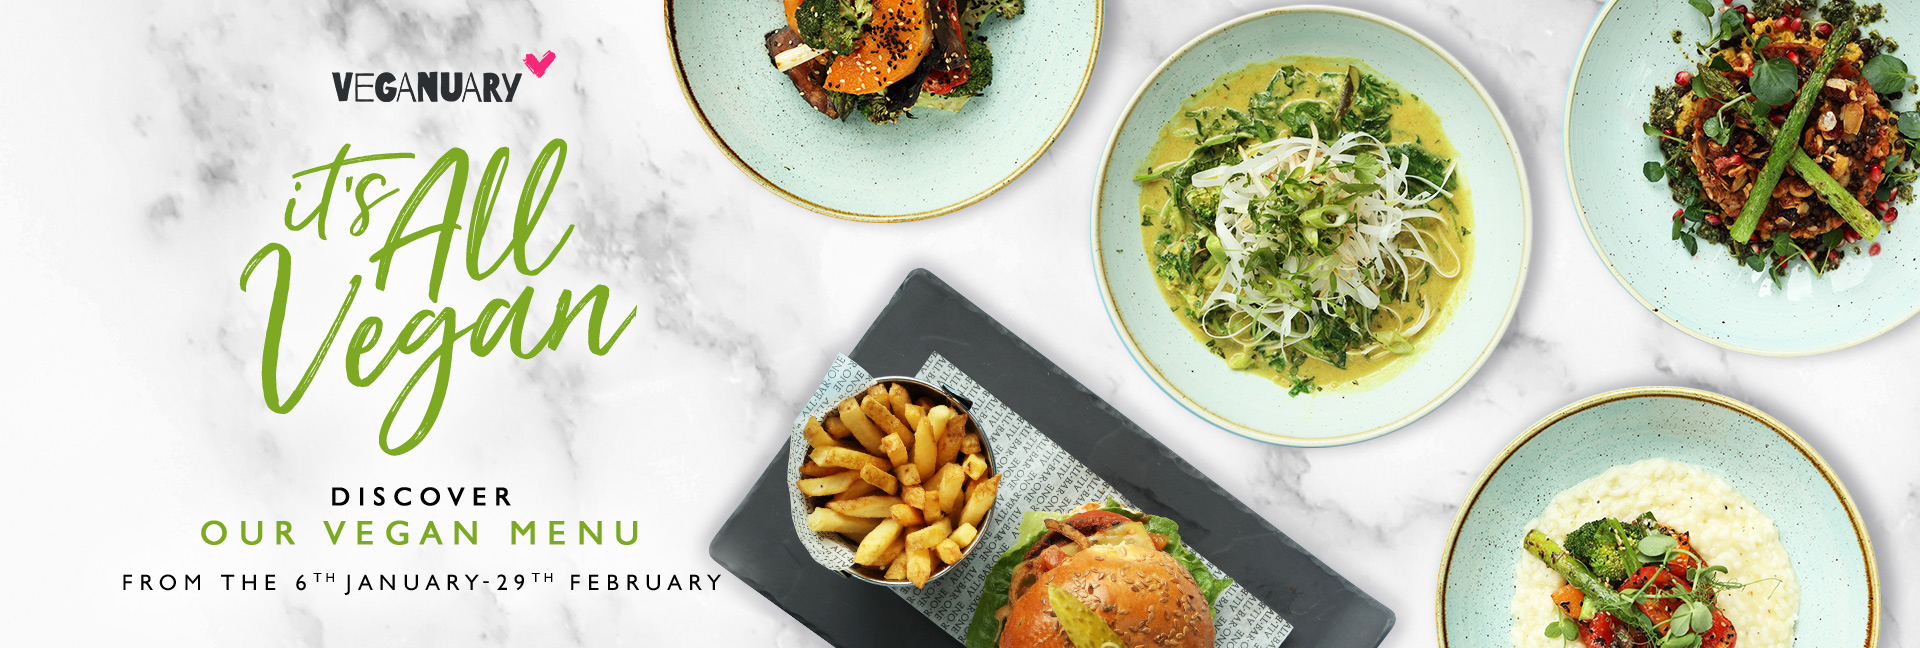 Veganuary Menu at All Bar One Covent Garden